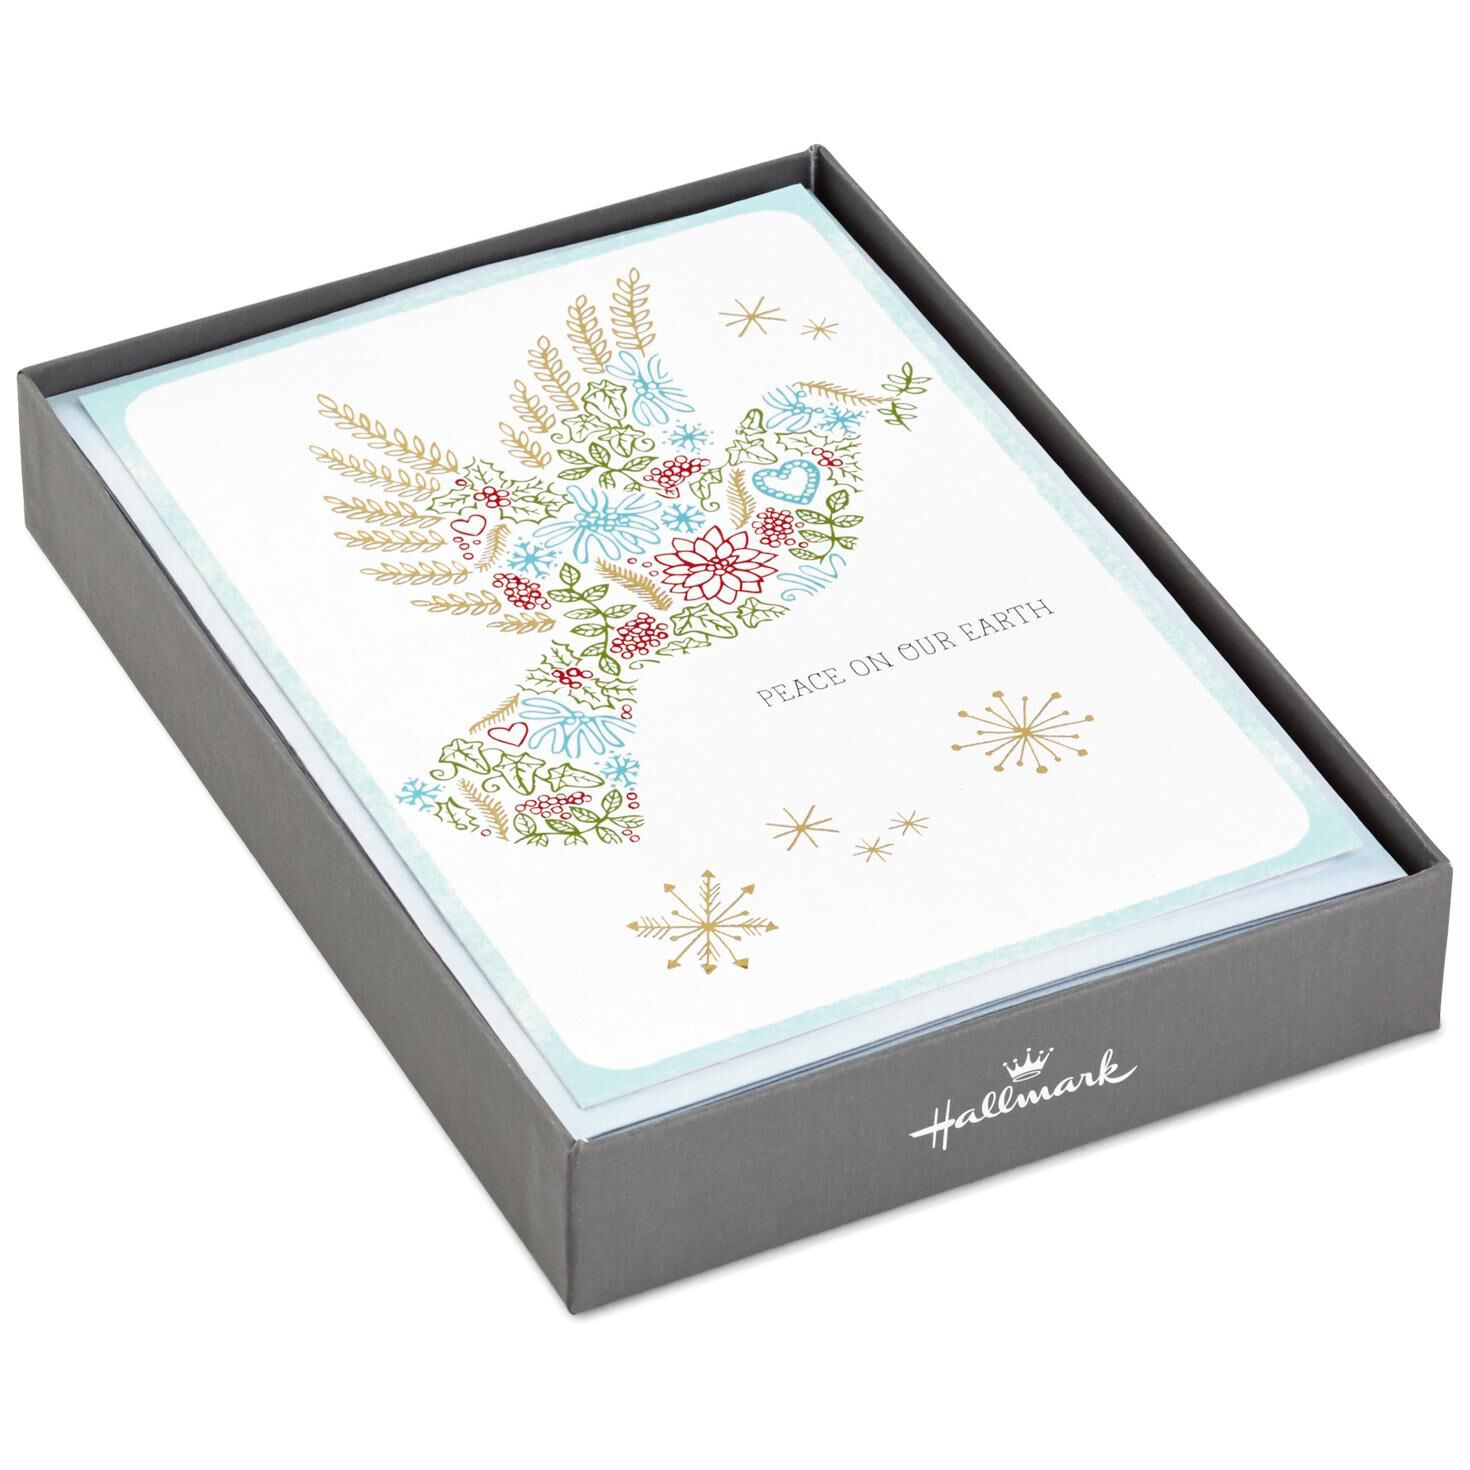 Dove of Peace Christmas Cards, Box of 16 - Boxed Cards - Hallmark